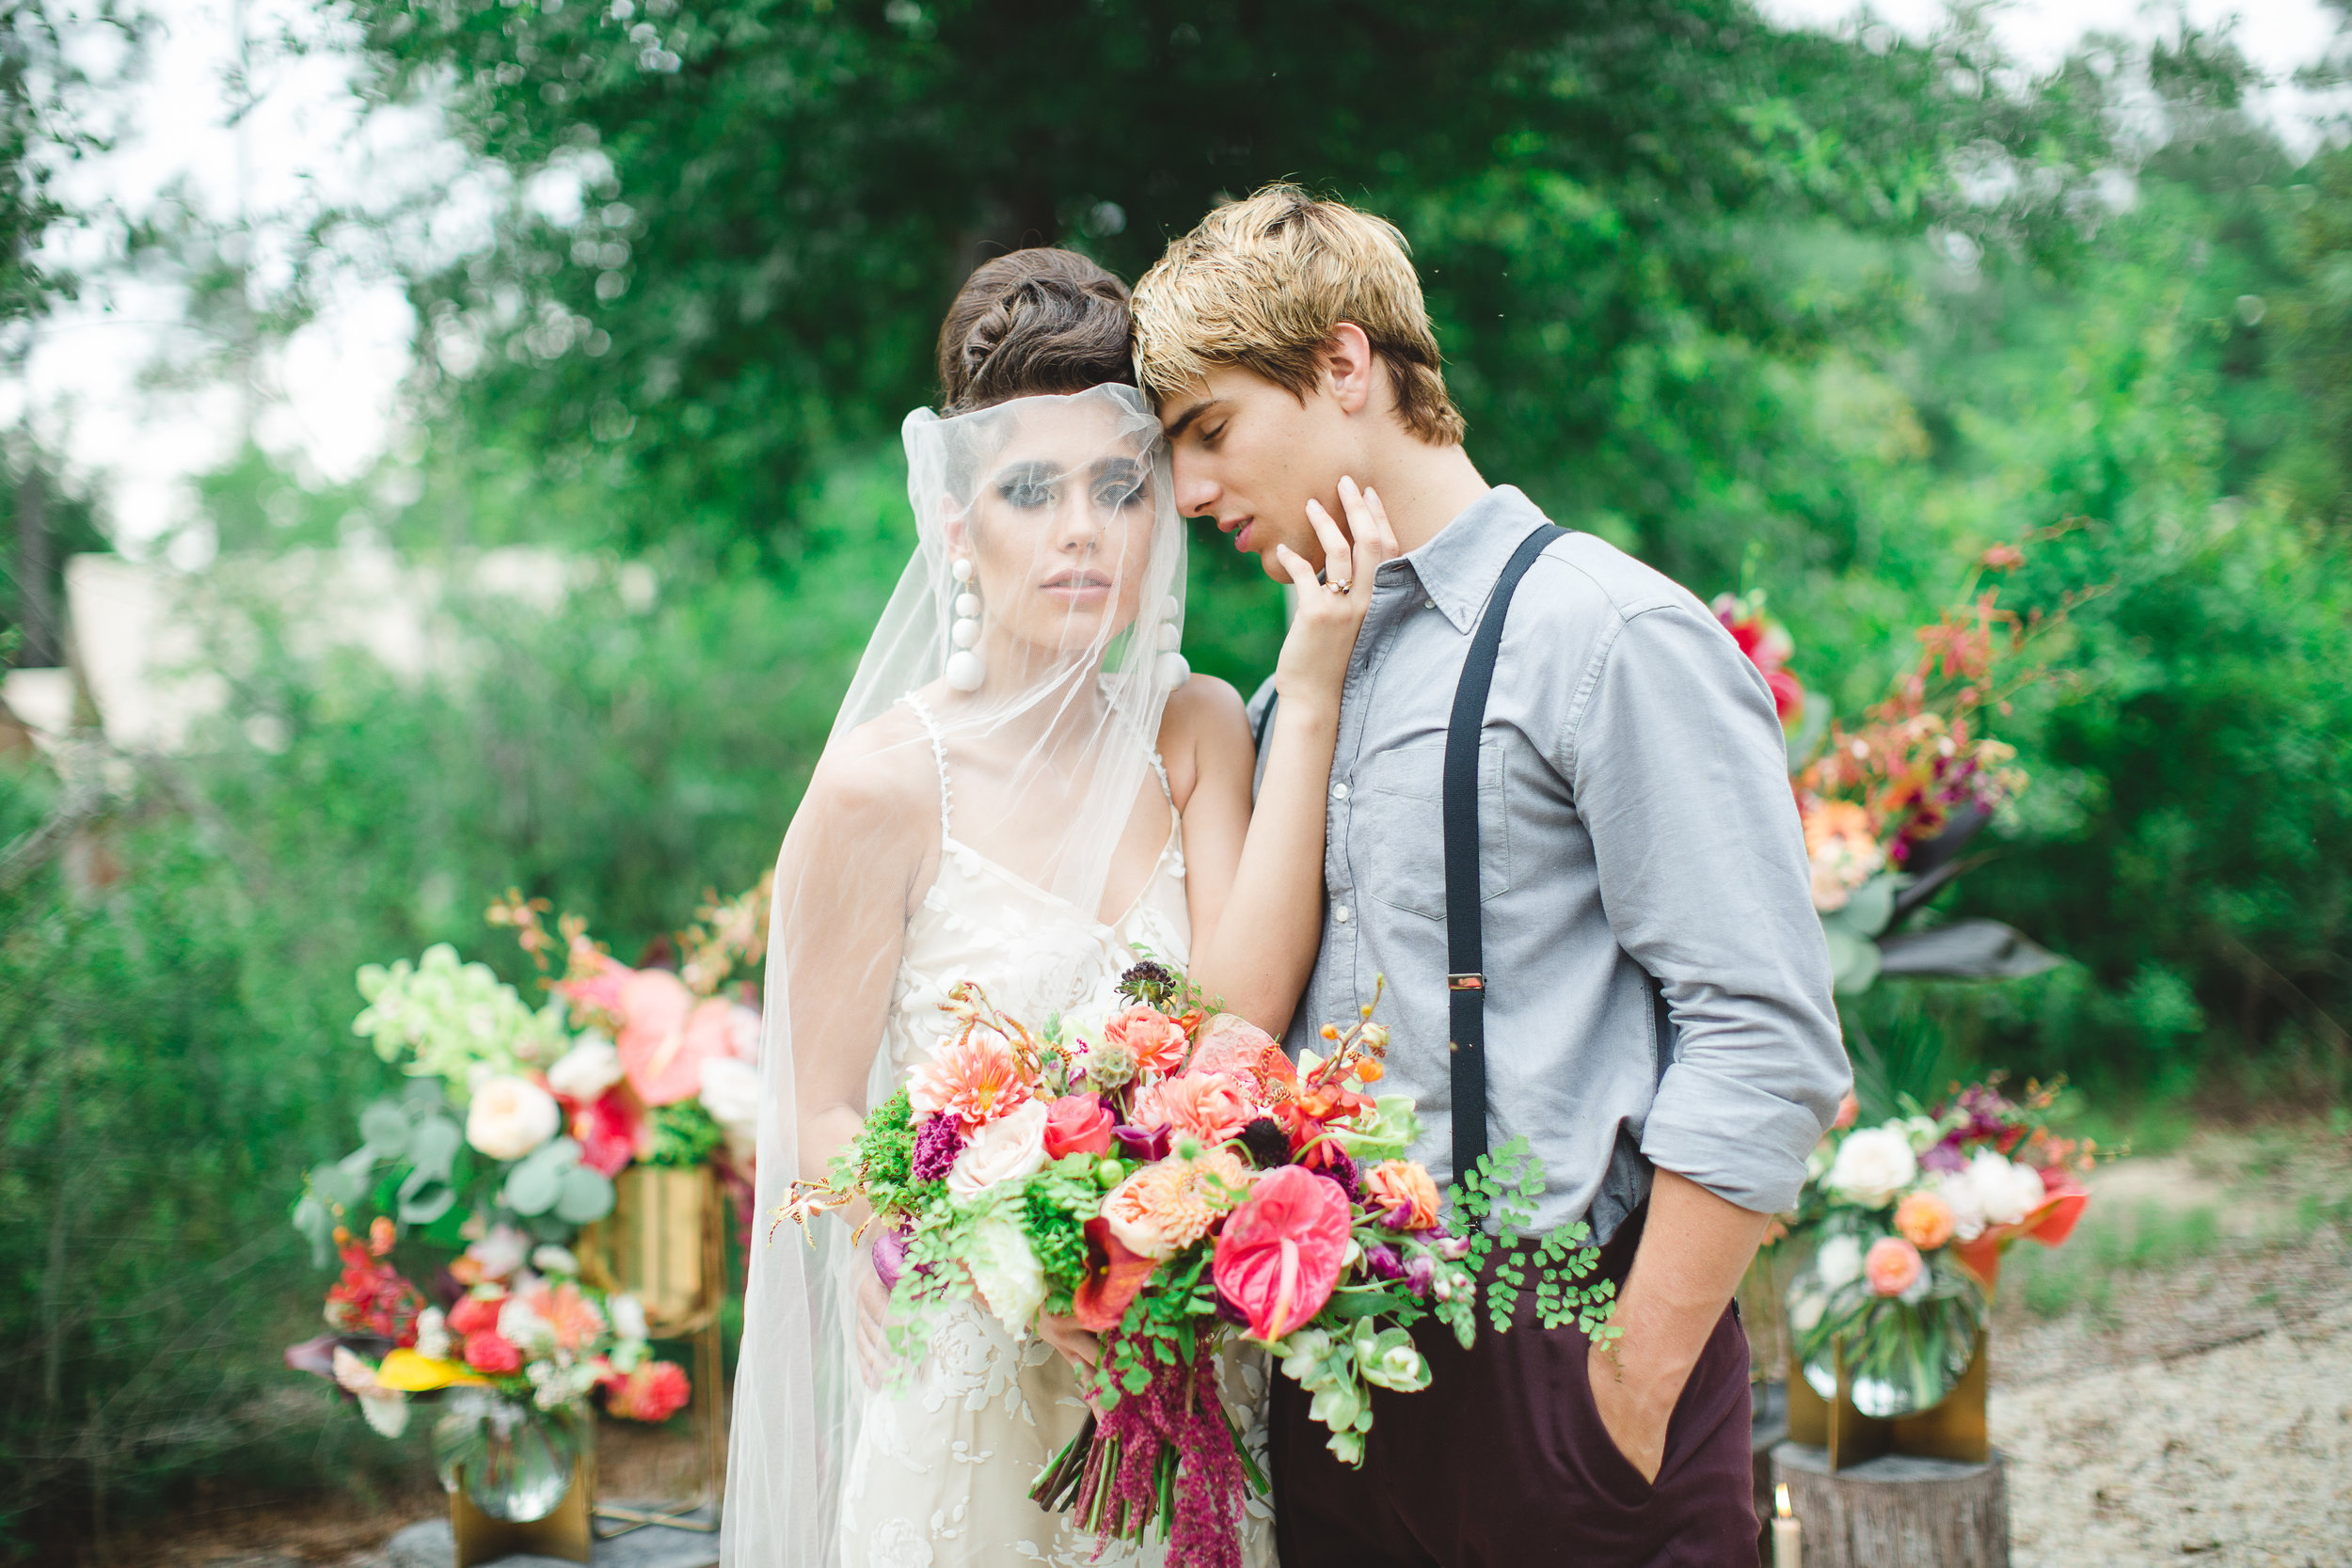 izzy-hudgins-photography-emily-burton-designs-ivory-and-beau-bridal-boutique-daughters-of-simone-sonje-jenny-yoo-bridesmaids-glamping-wedding-boho-wedding-outdoor-wedding-coldwater-gardens-wedding-savannah-bridal-boutique-savannah-wedding-planner-21.jpg